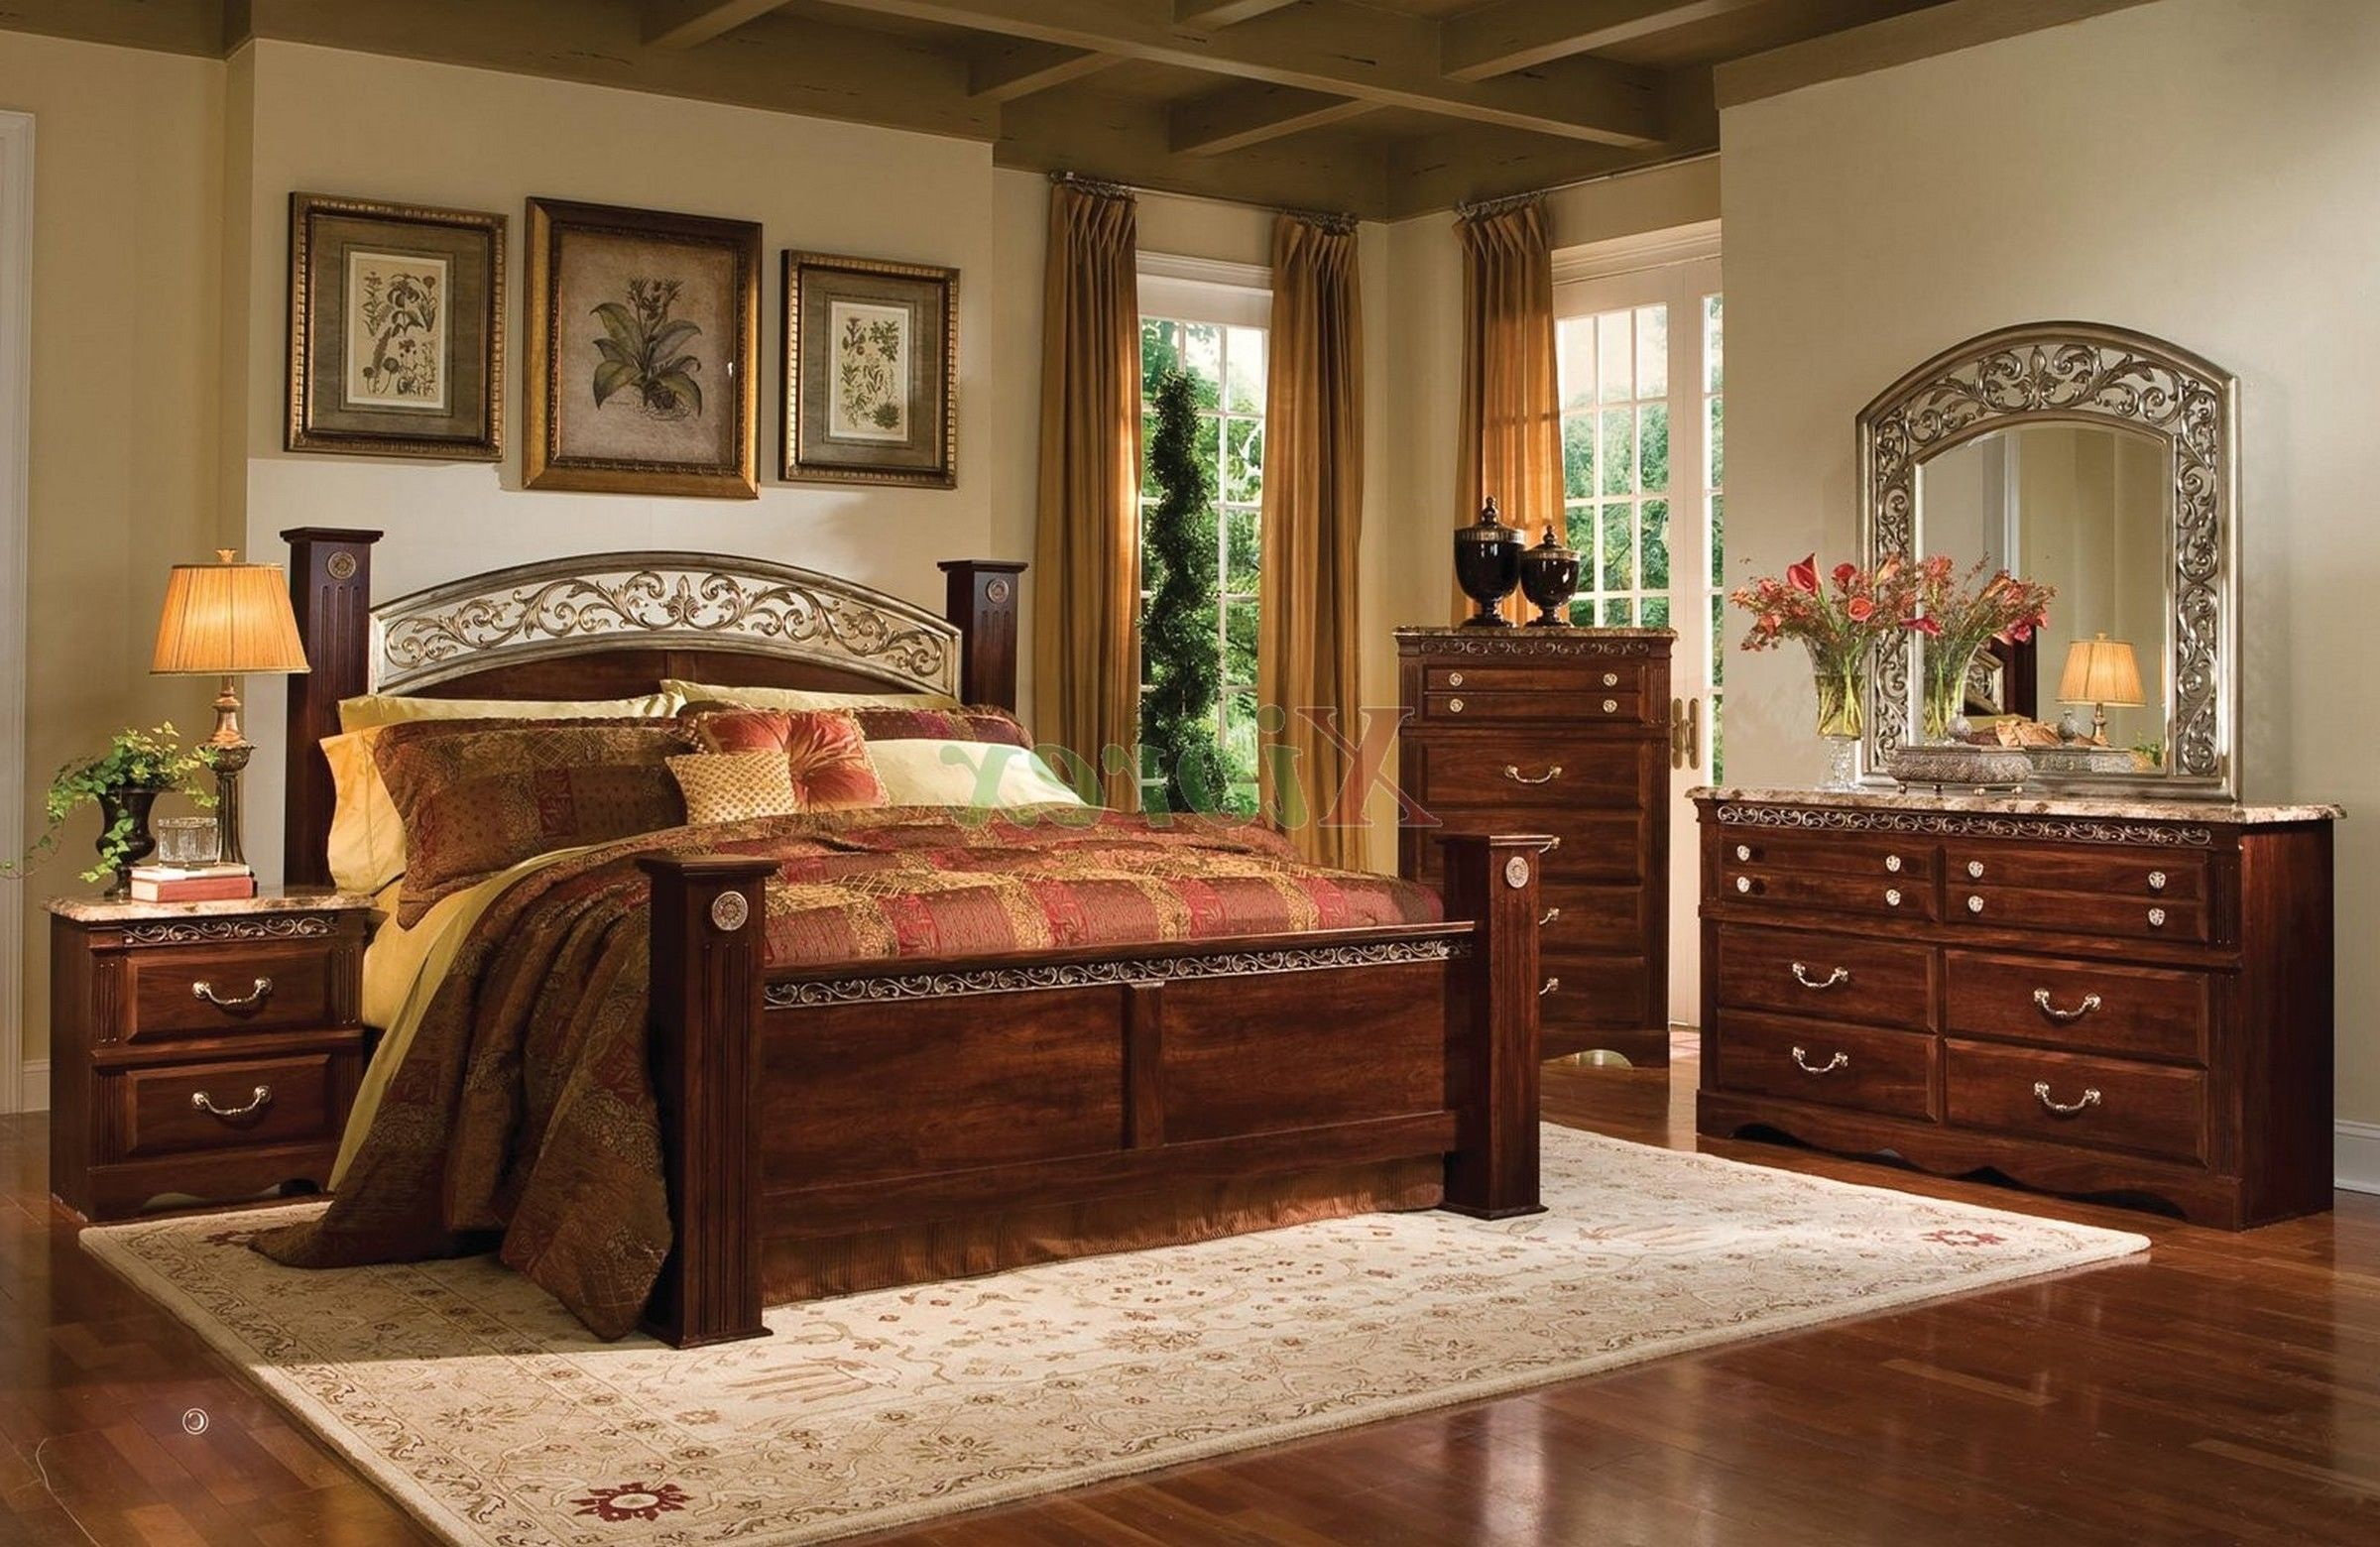 Wood furniture bedroom design picture1 bedroom for Modern wooden bedroom designs